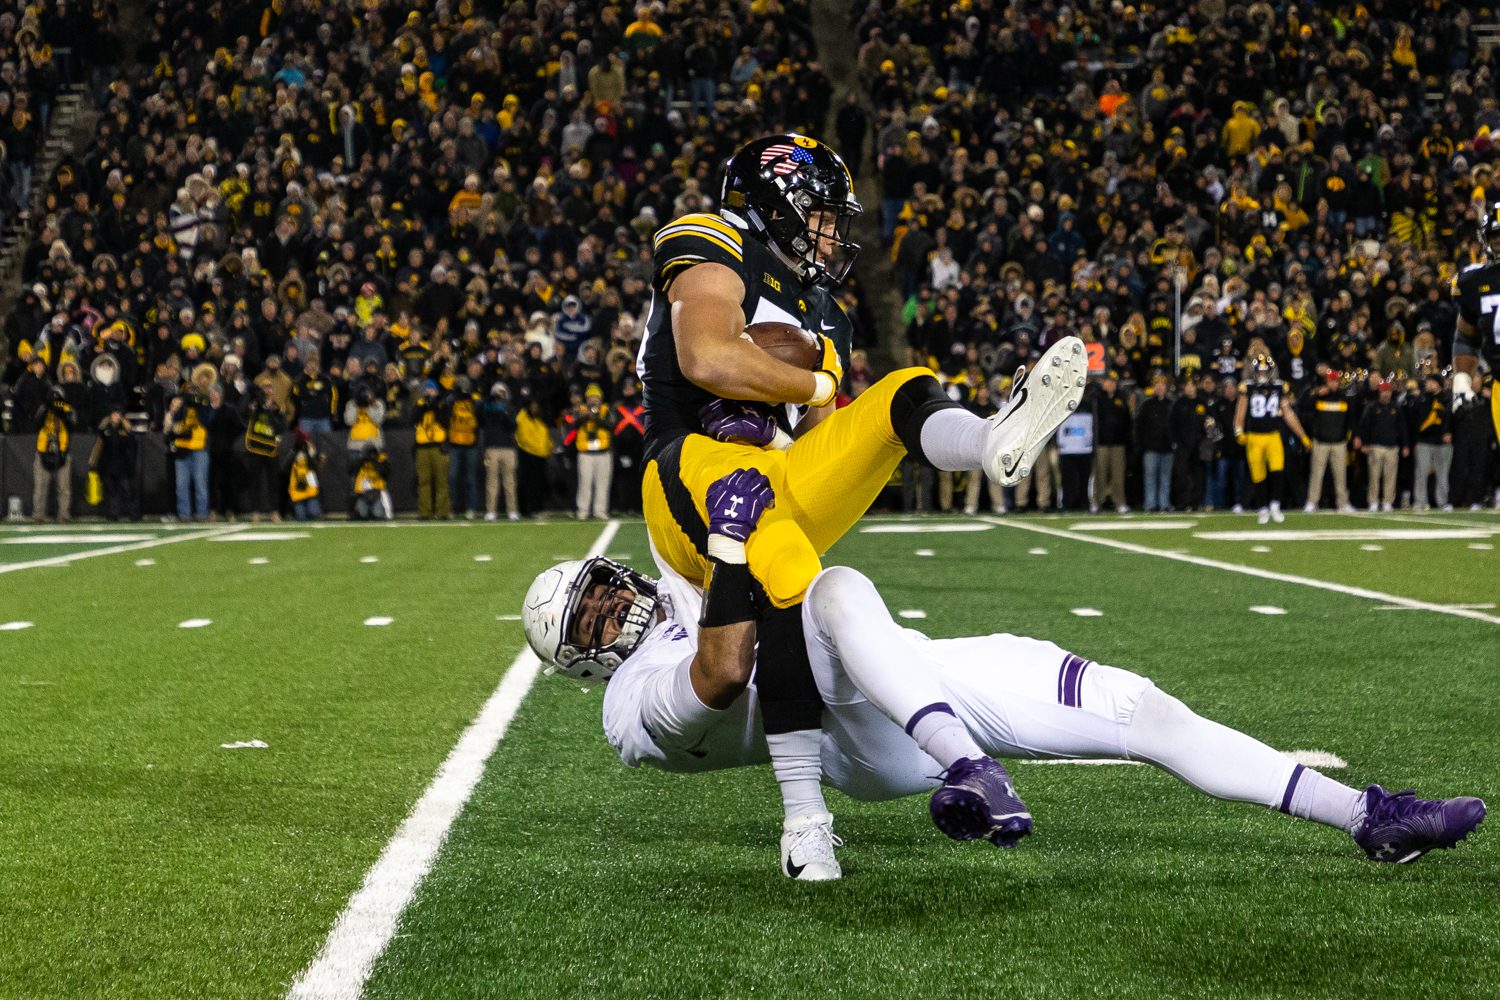 Iowa+tight+end+T.J.+Hockenson+%2338+is+tackled+during+a+game+against+Northwestern+University+on+Saturday%2C+Nov.+10%2C+2018+at+Kinnick+Stadium+in+Iowa+City.+The+Wildcats+defeated+the+Hawkeyes+14-10.+%28David+Harmantas%2FThe+Daily+Iowan%29